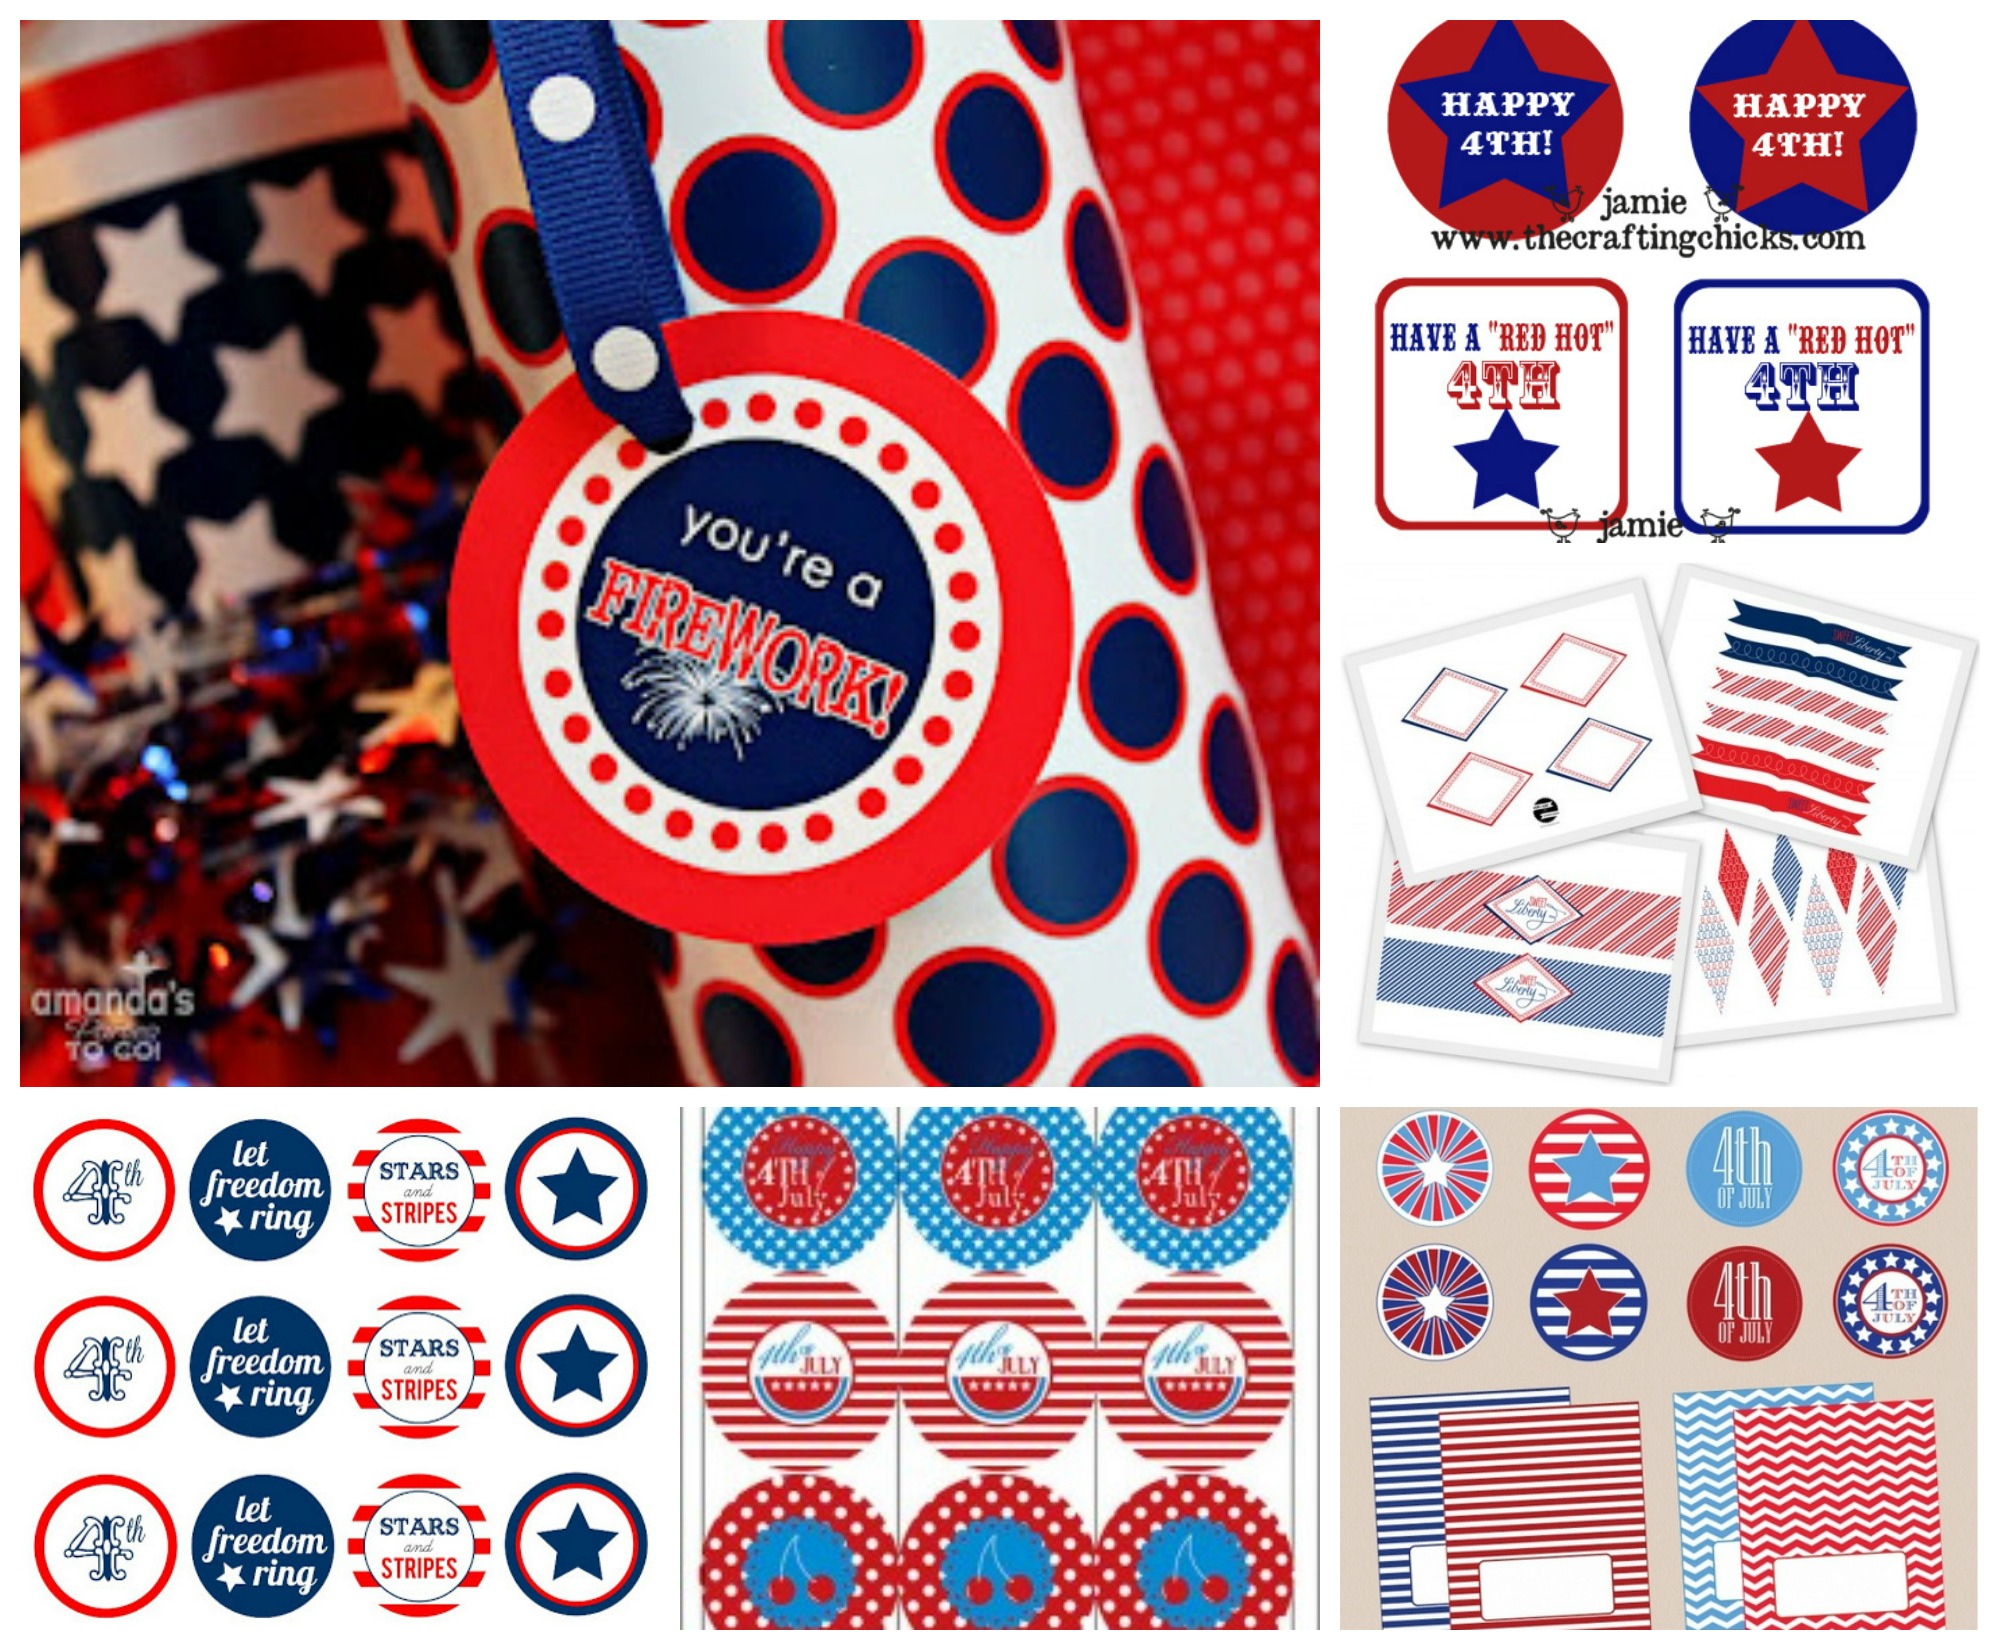 July 4th Free Printable Gift Tags